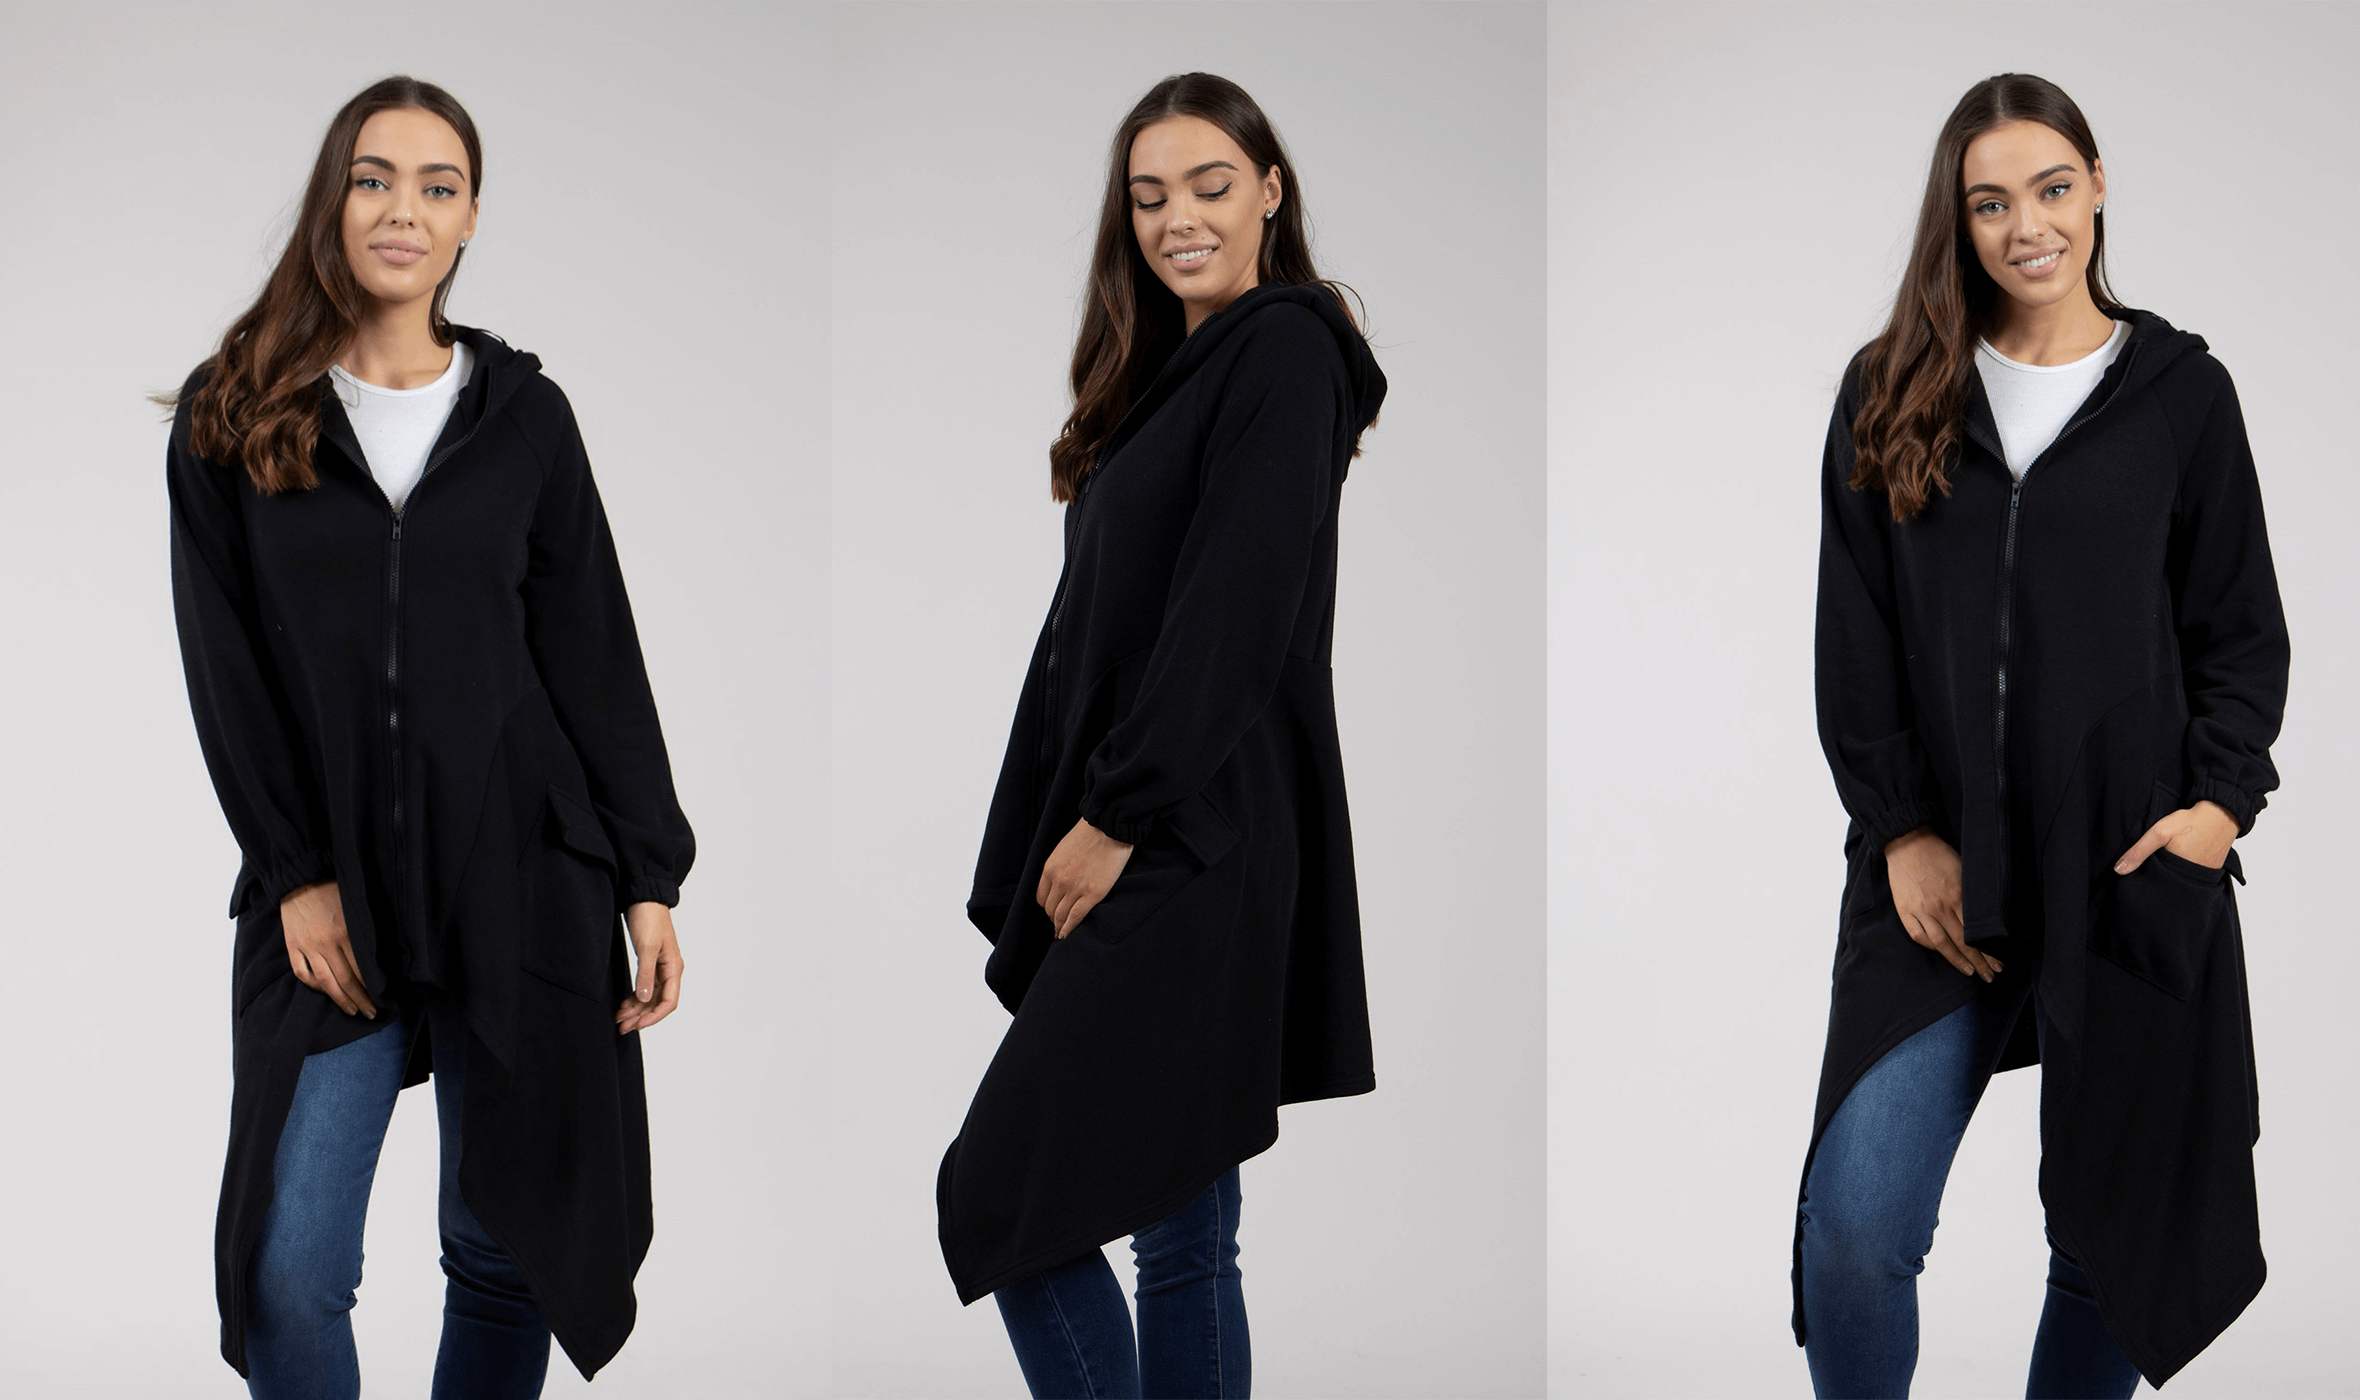 Winter Warmers The Jacket Edit - Hooded Asymmetric Jacket | Femme Connection